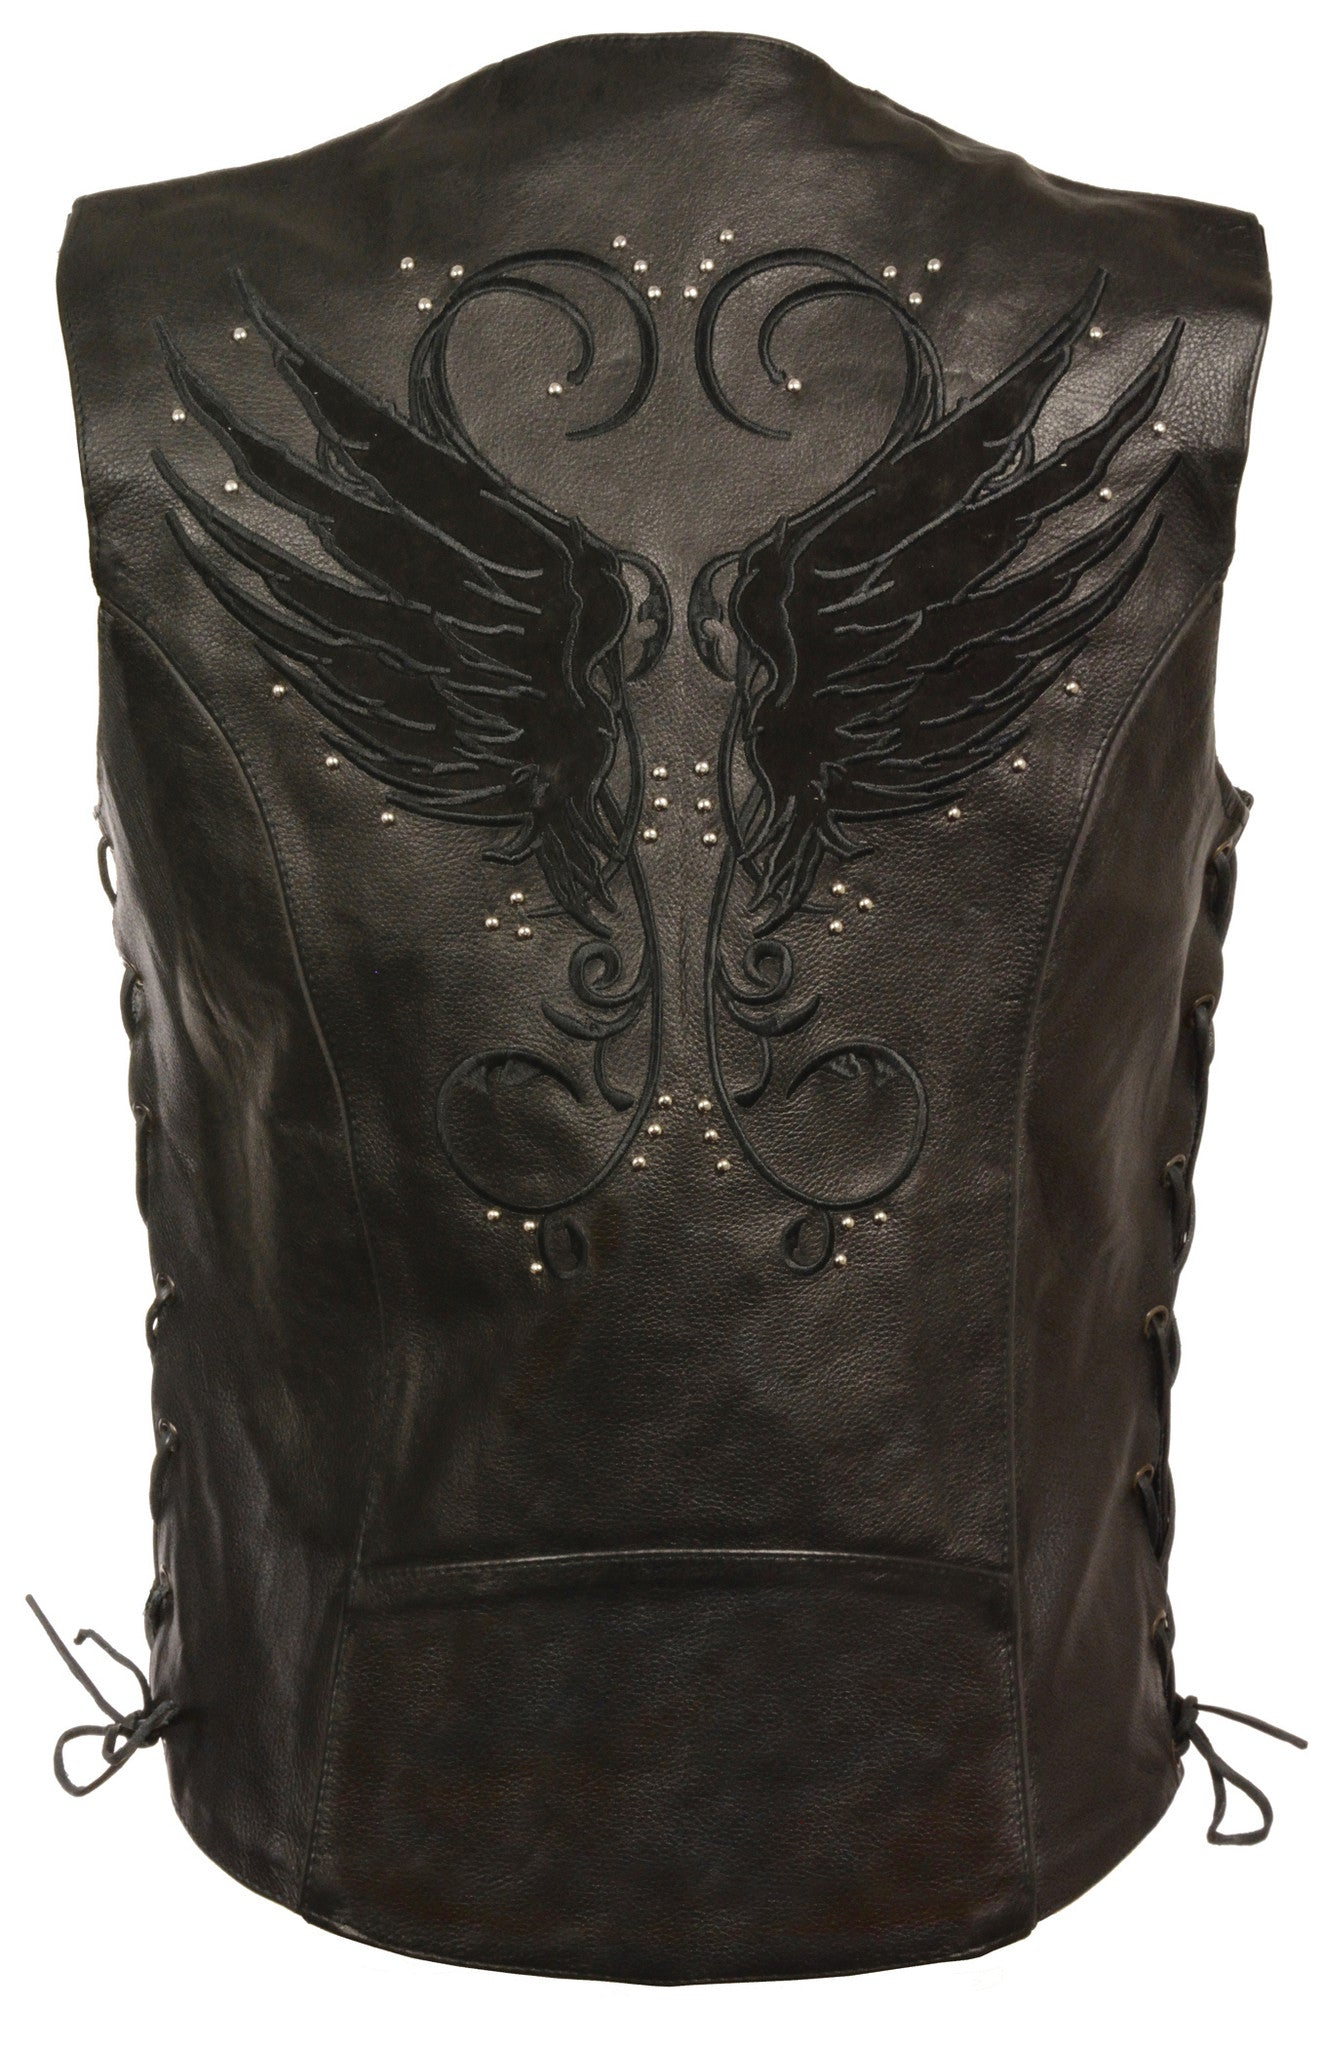 WOMEN'S MOTORCYCLE RIDING BLACK LEATHER VEST W/ WINGS DETAILING SIDE LACE